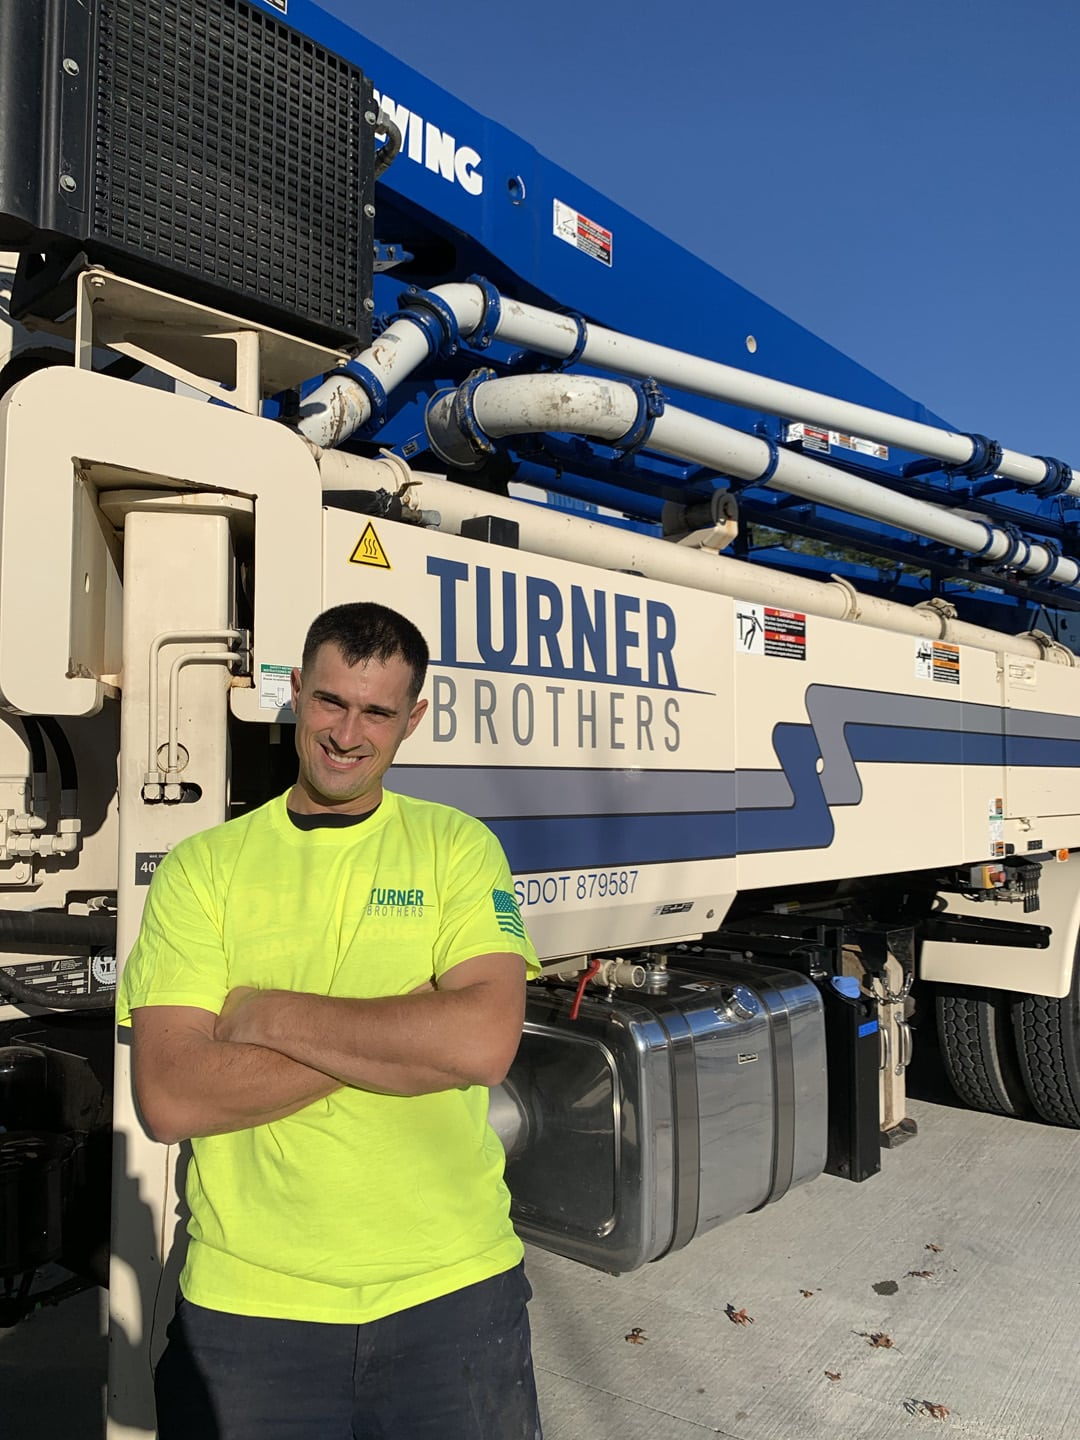 Turner Brothers employee in front of concrete pump truck